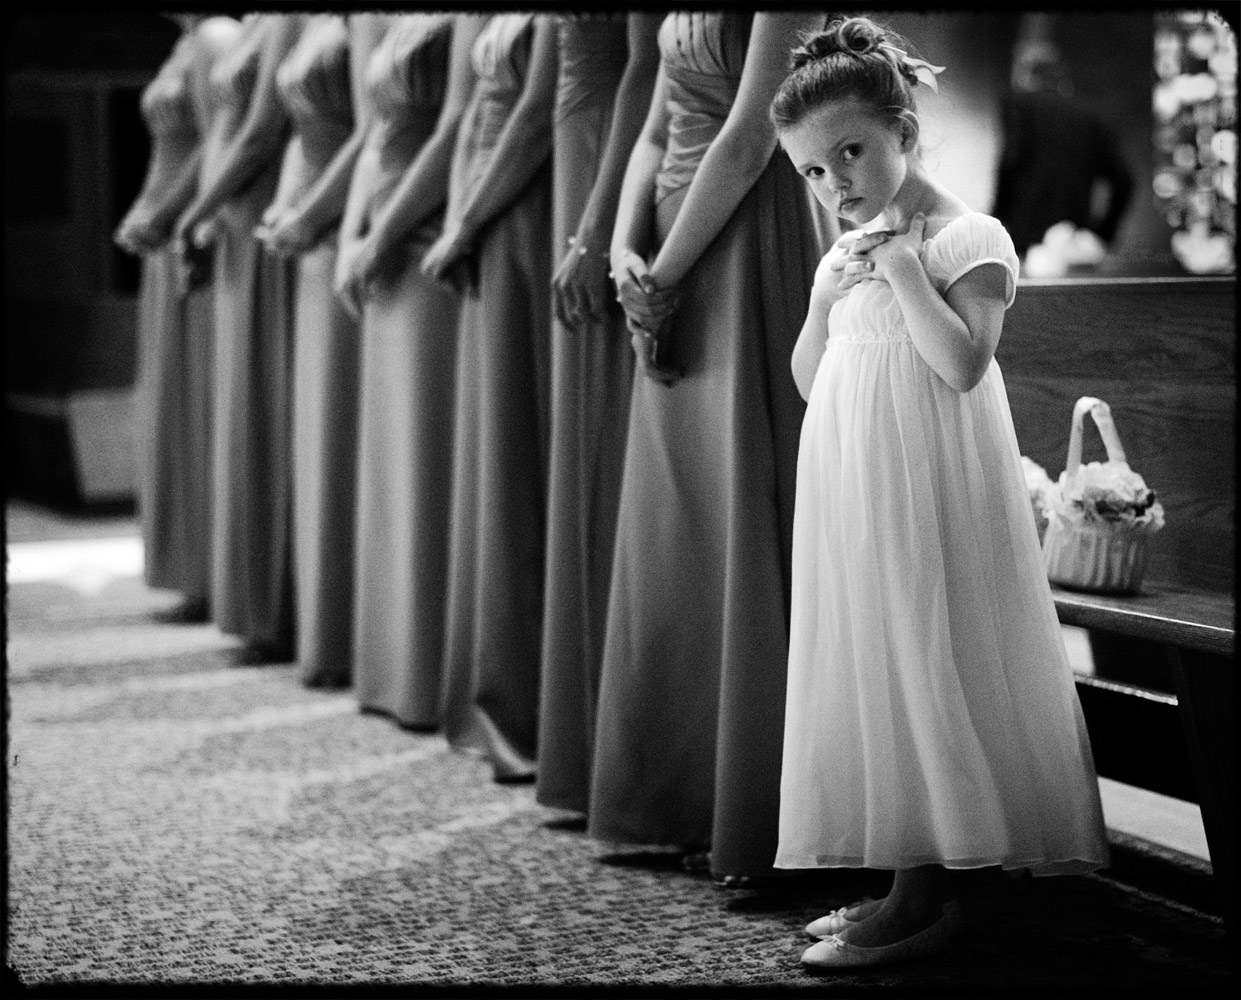 black and white images of a flowergirl staring innocently into the camera in a church during a wedding ceremony